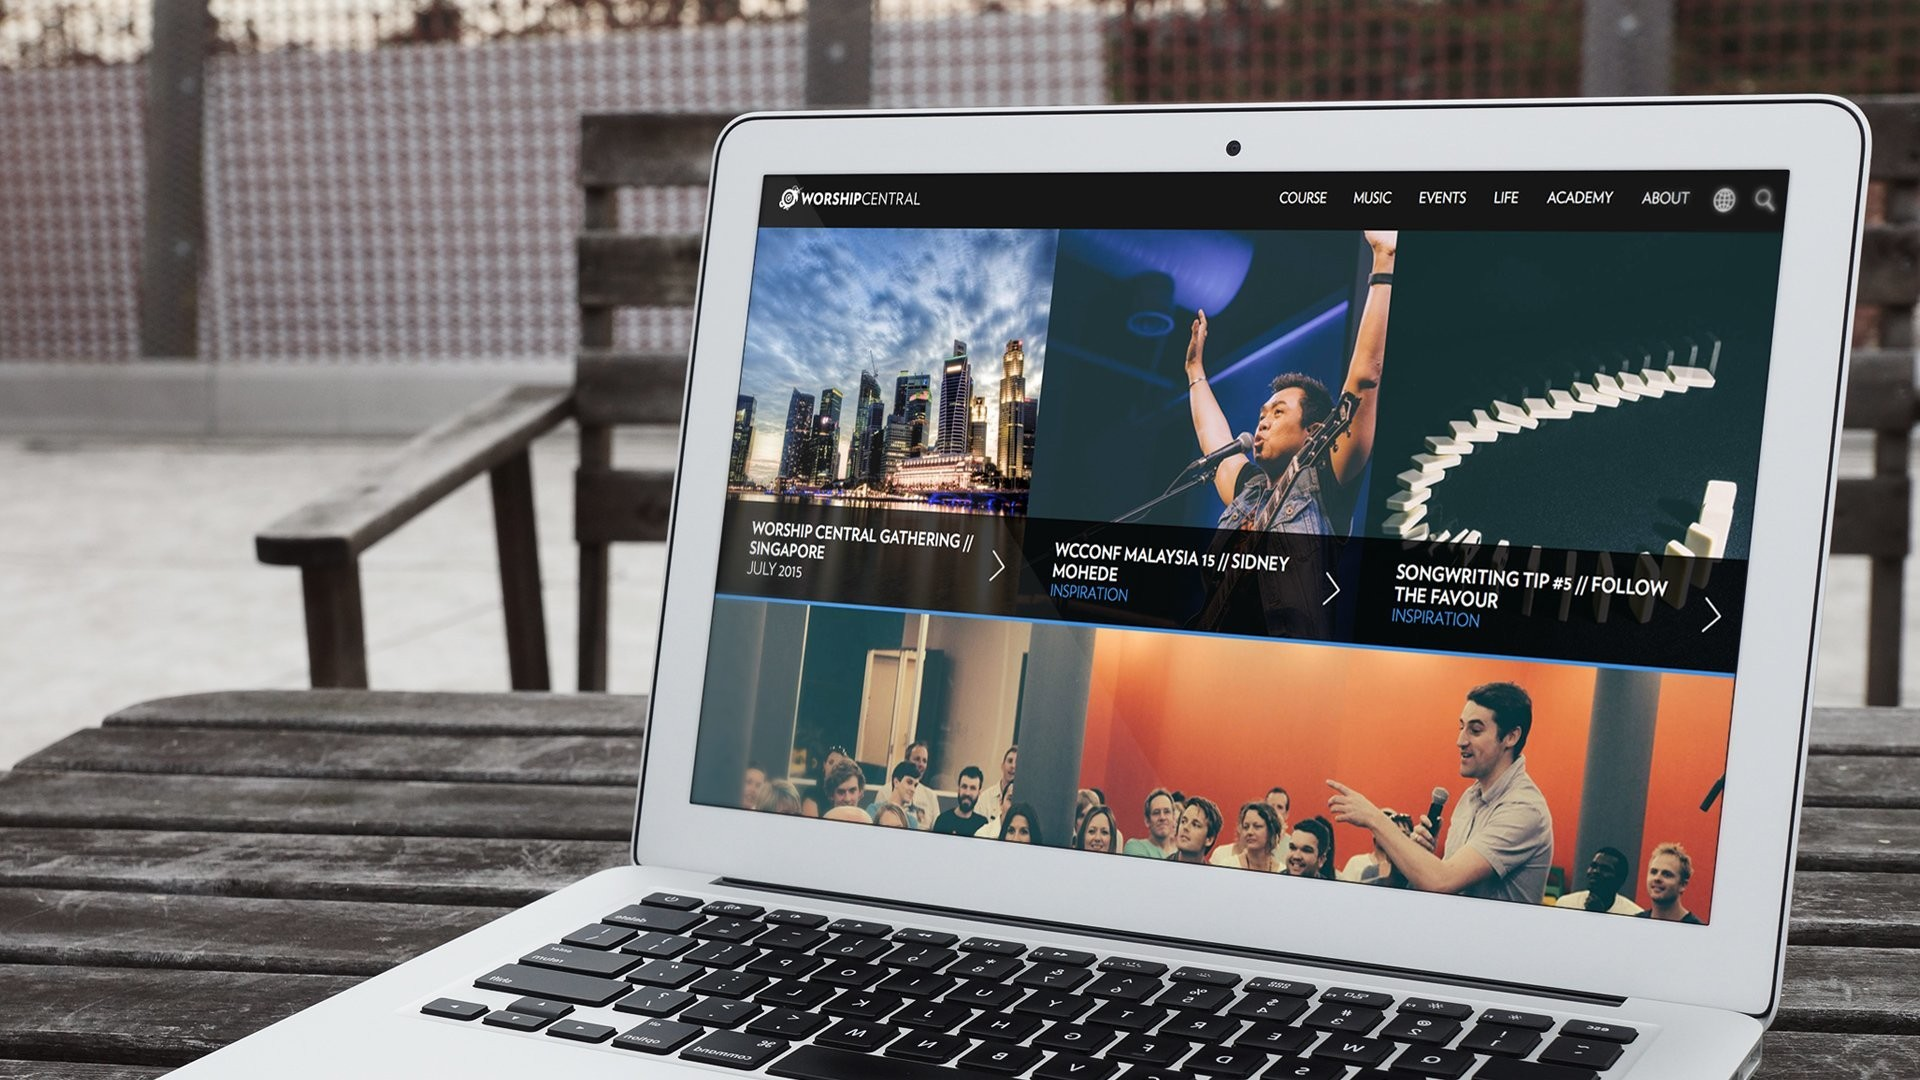 Worship Central website design